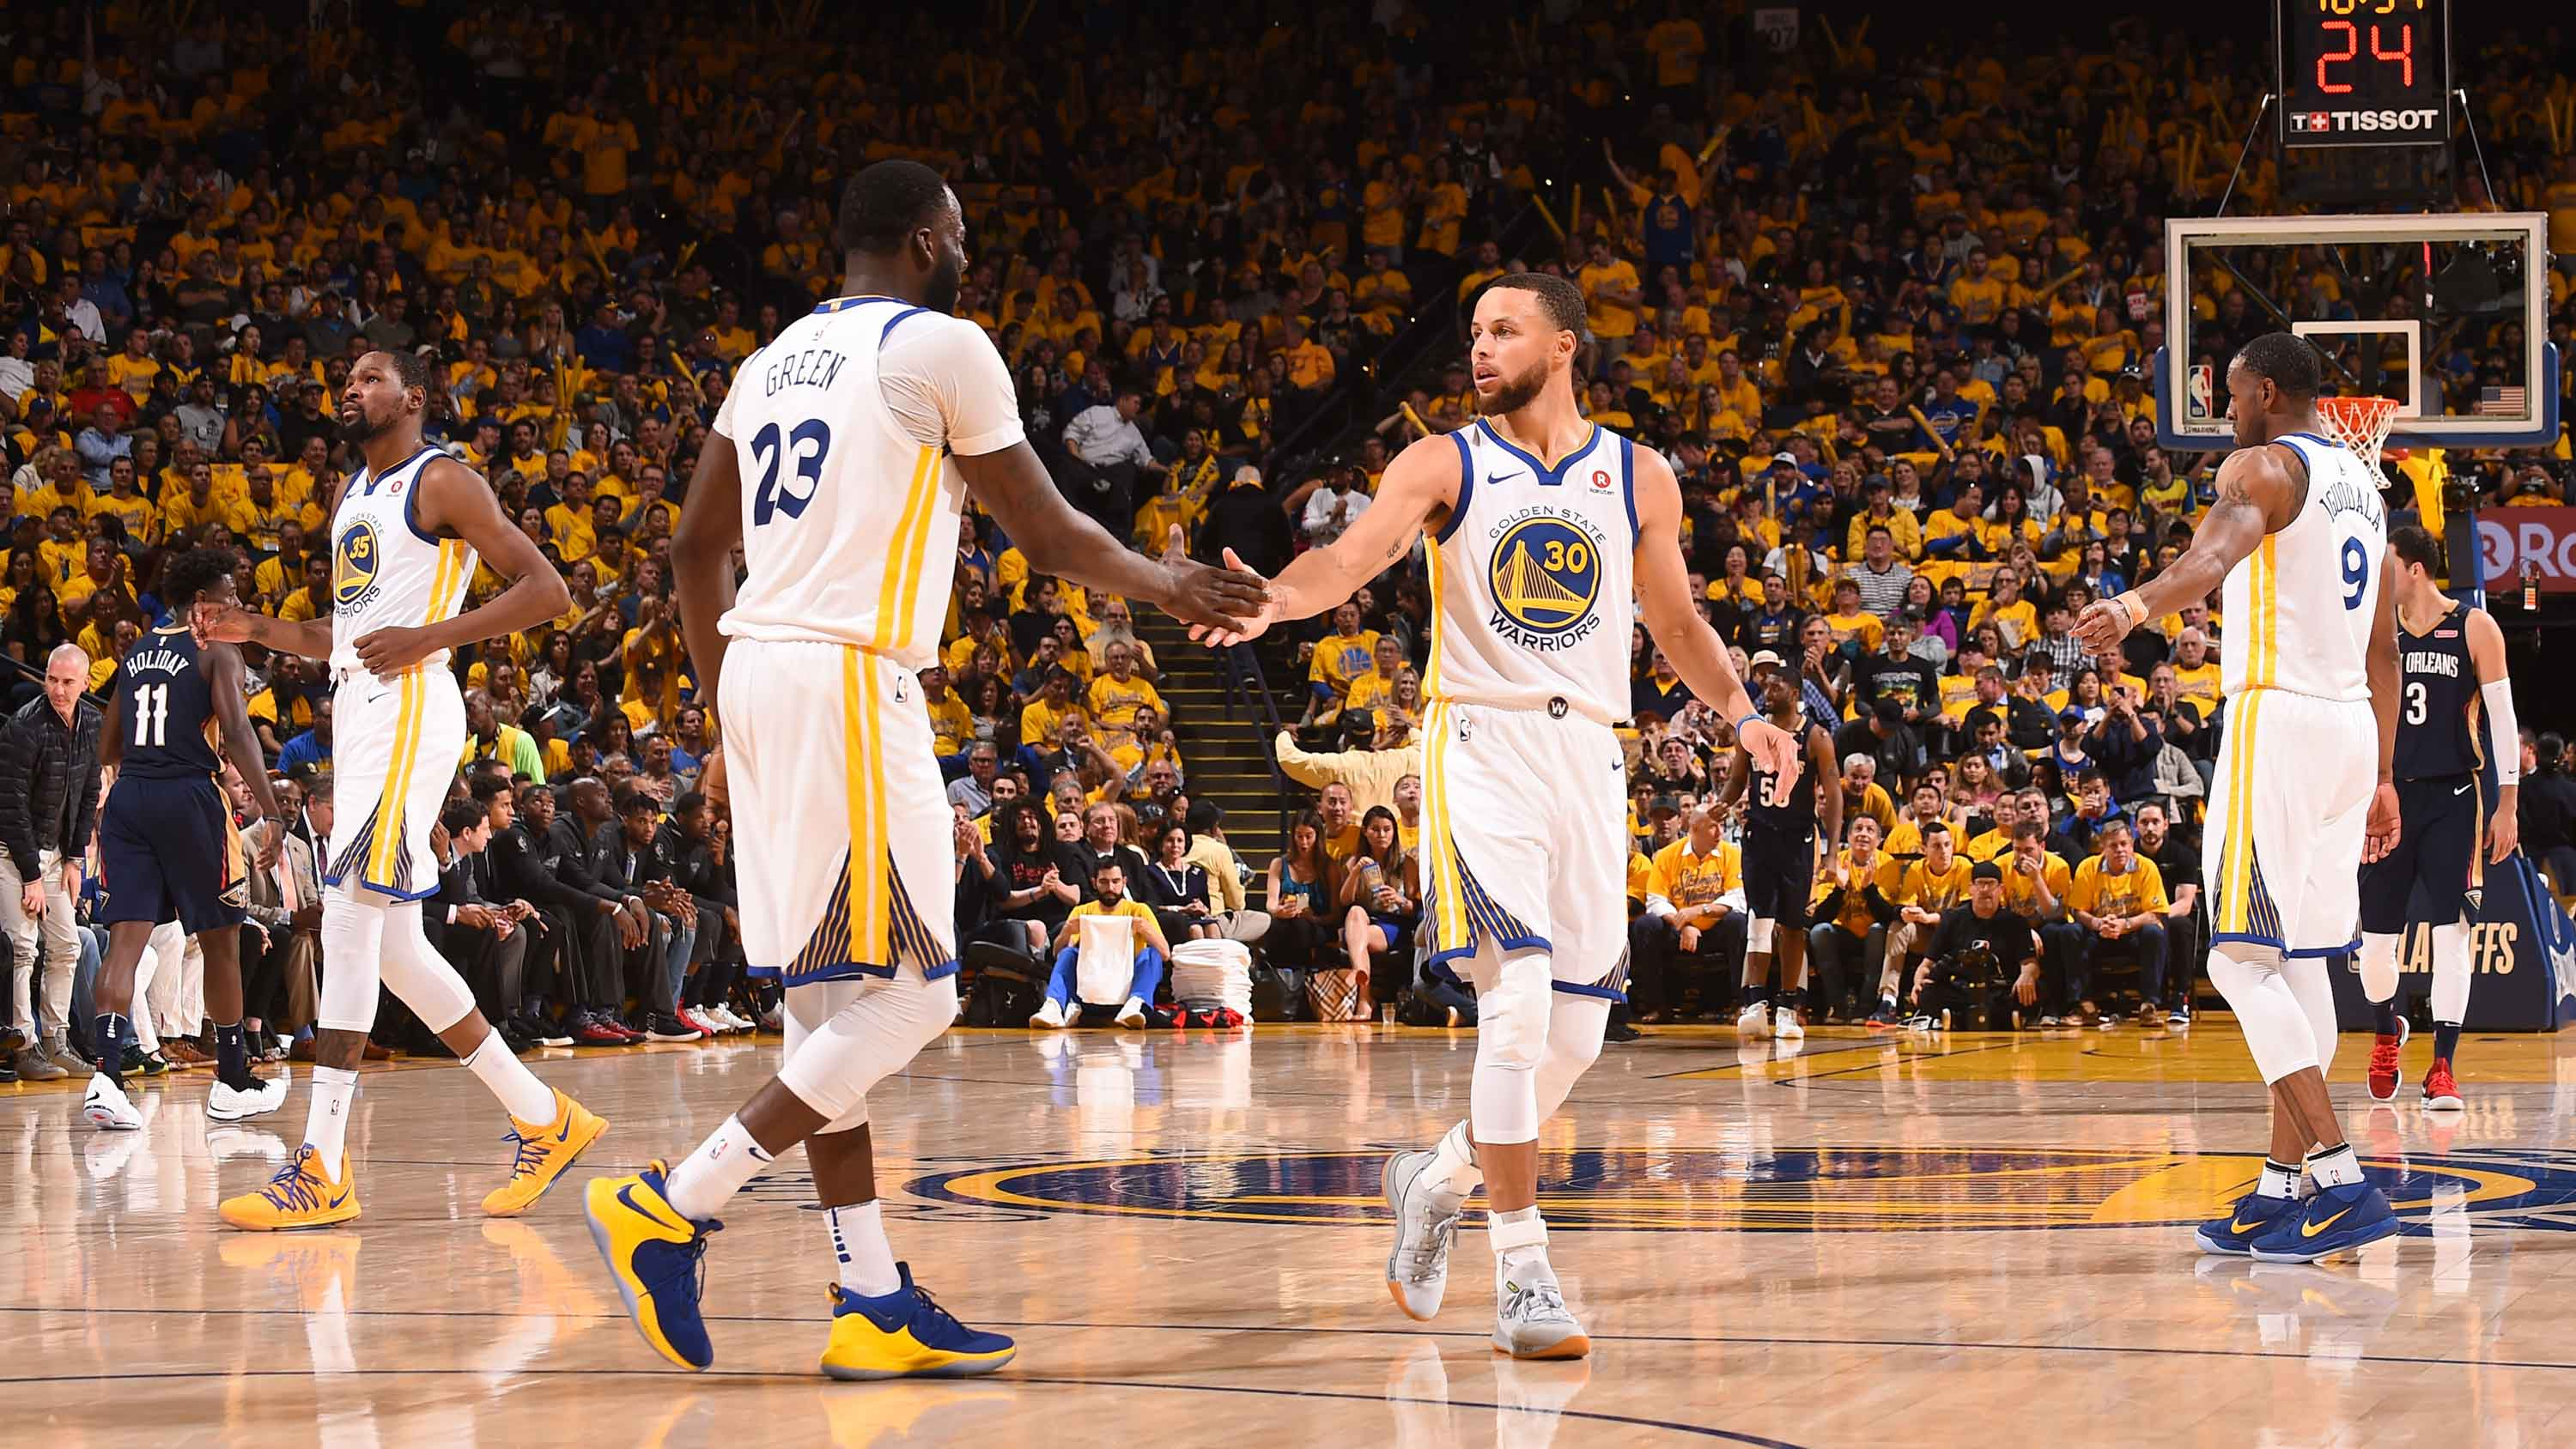 GAME 5 RECAP: Warriors 113, Pelicans 104